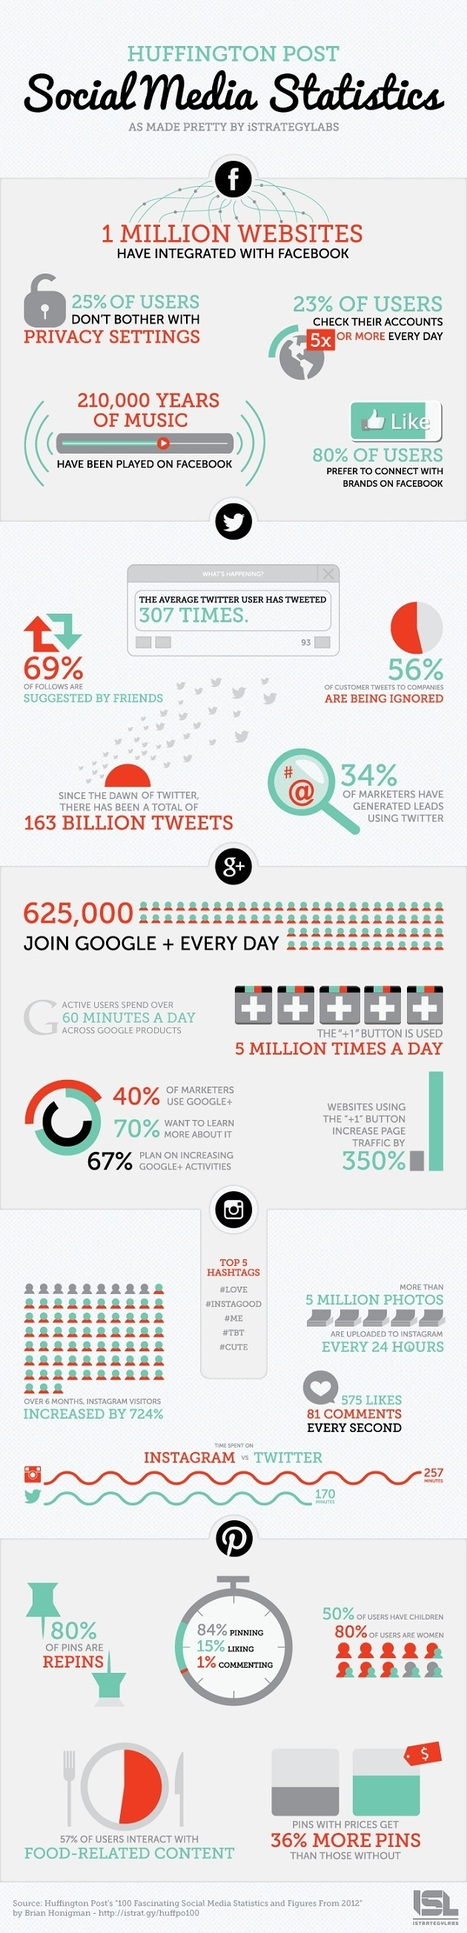 Infographic: 365 Days of Social Media | Social Media Digital Marketing Zimbabwe | Scoop.it